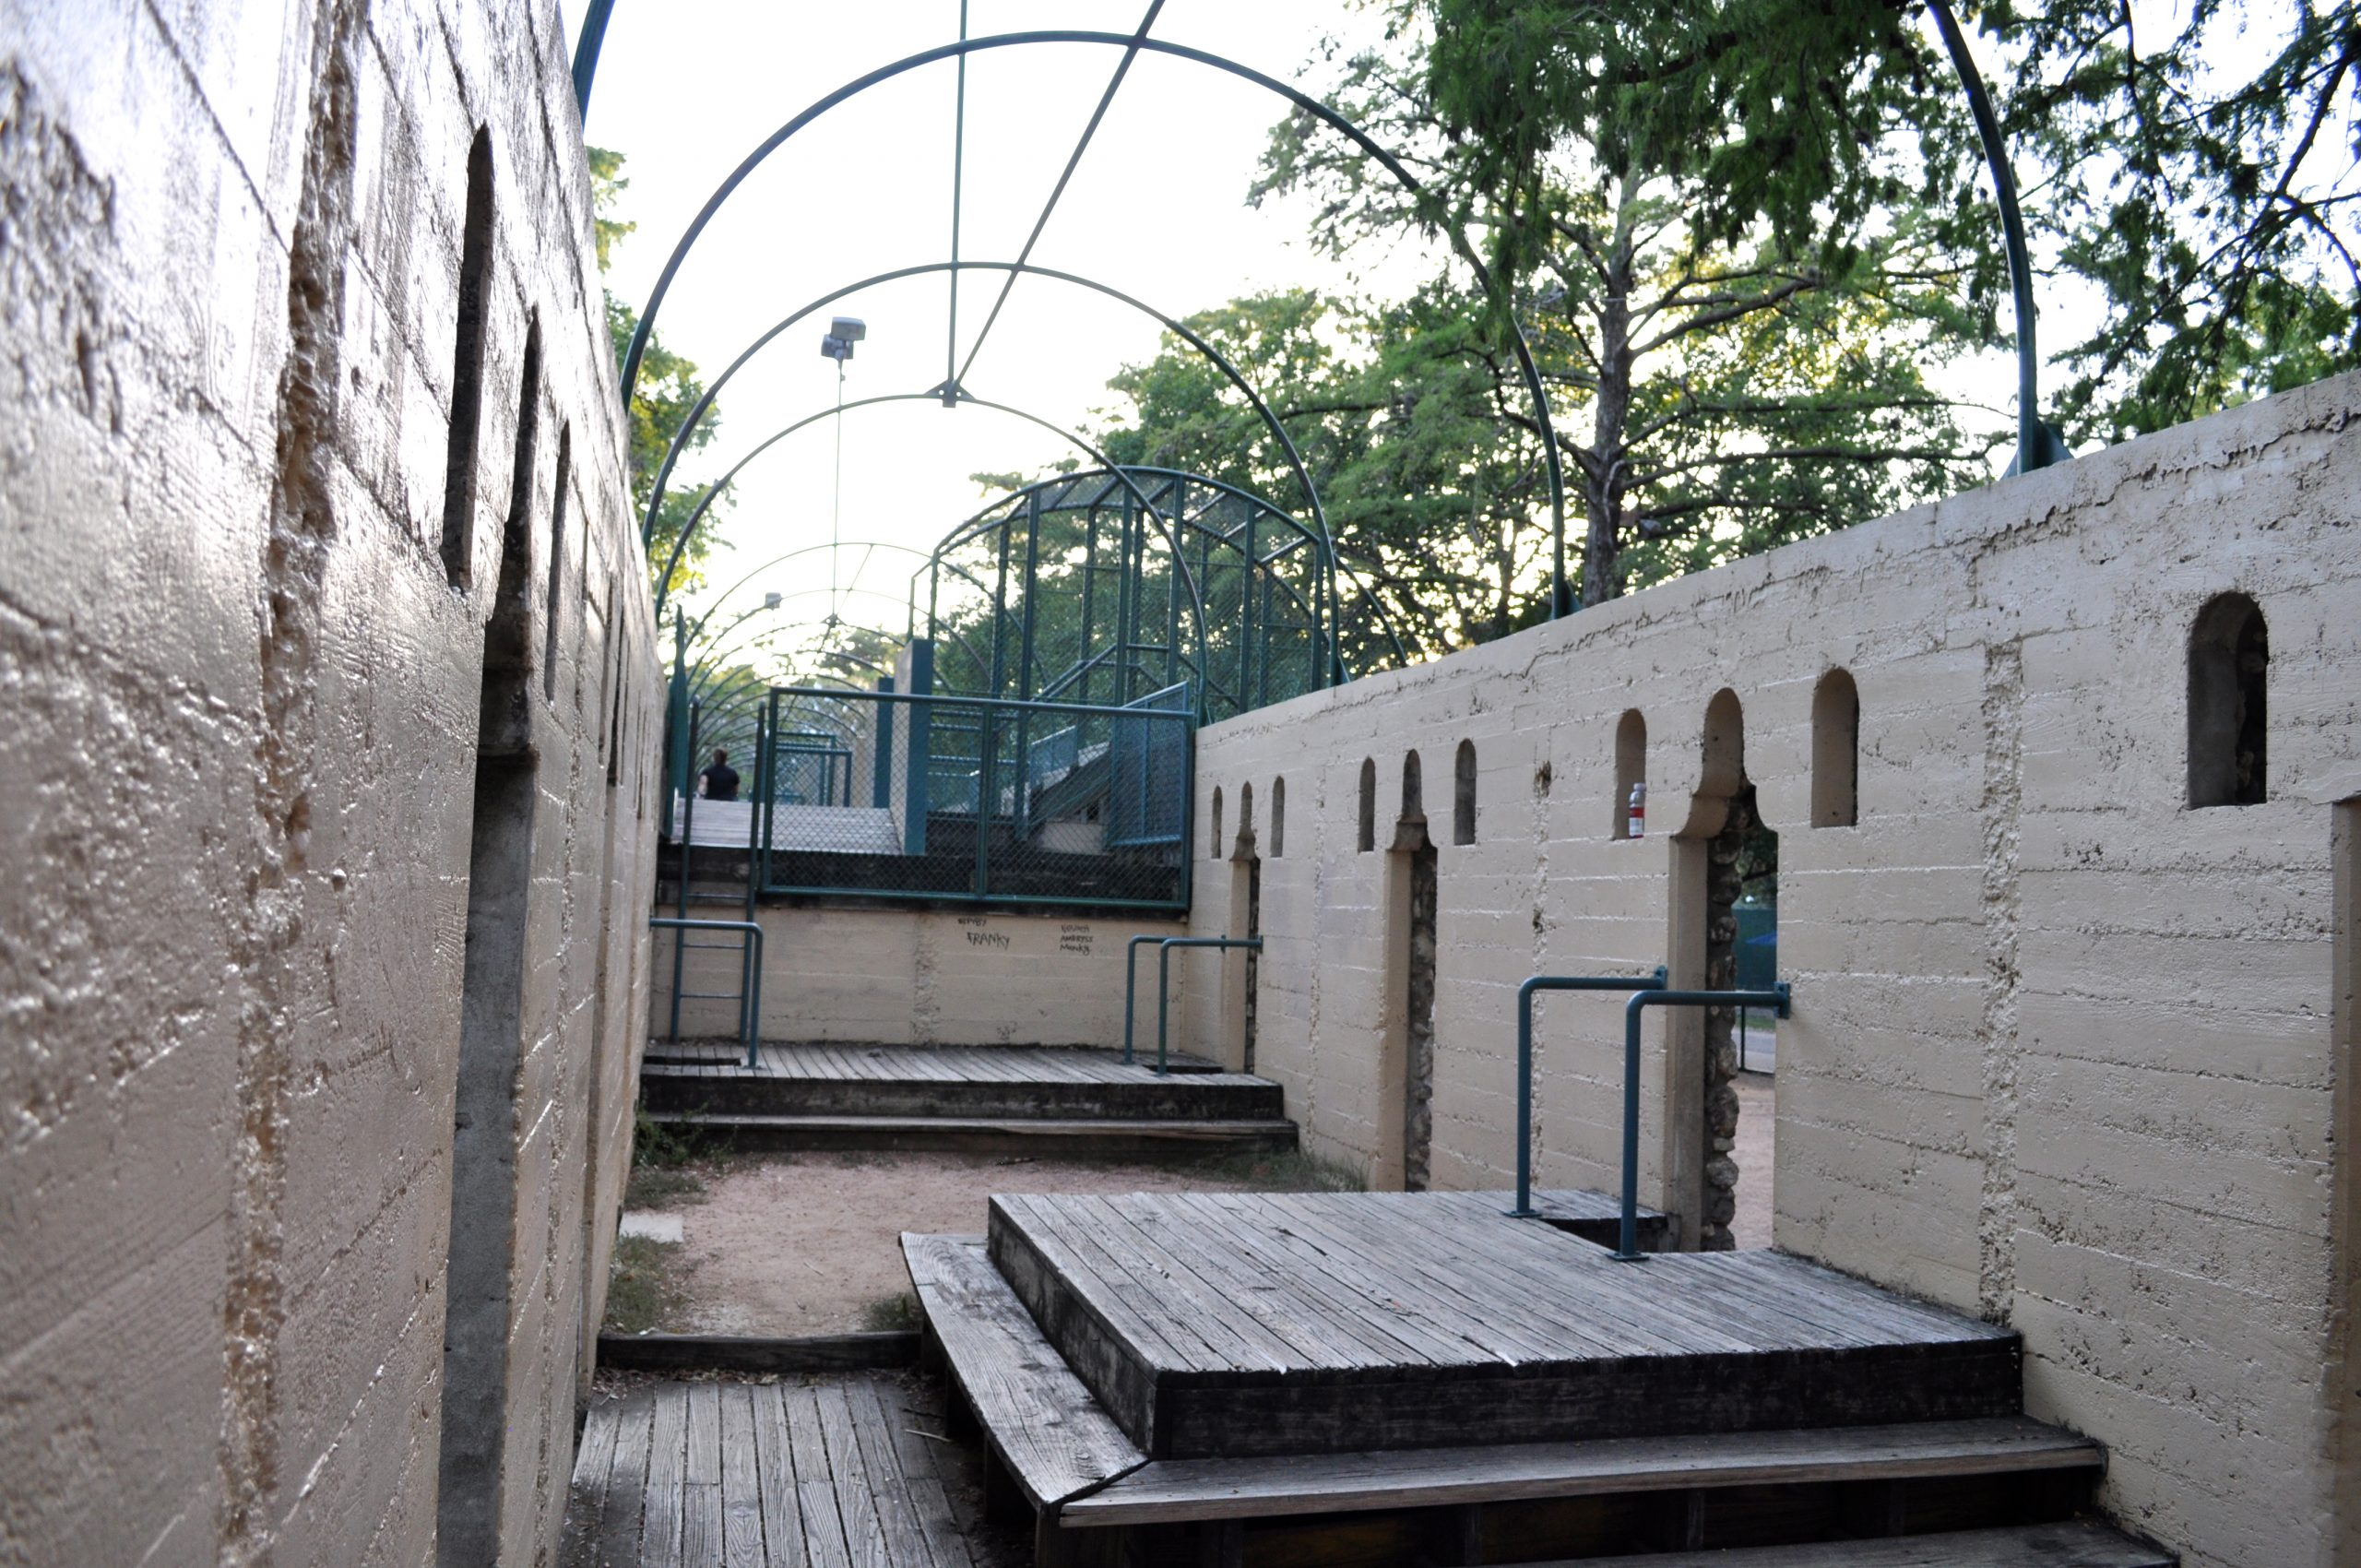 A creative playscape has been made out of the former changing rooms for the long-closed Lambert swimming pool – the first public pool in San Antonio. Photo by Iris Dimmick.